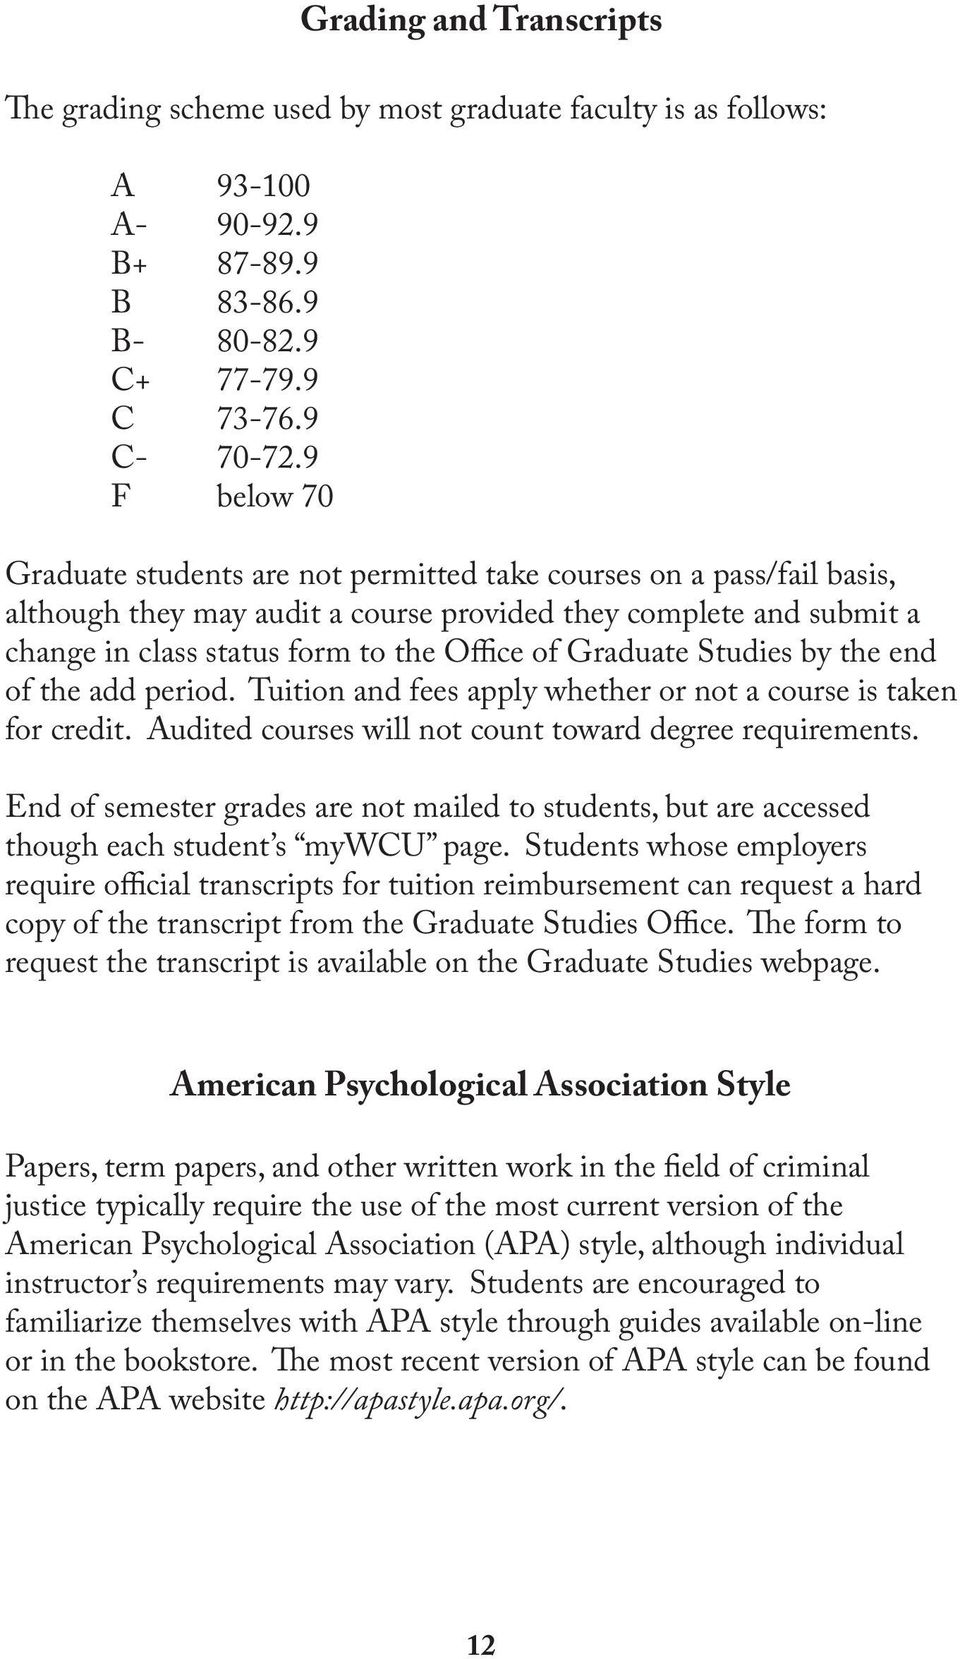 Graduate Studies by the end of the add period. Tuition and fees apply whether or not a course is taken for credit. Audited courses will not count toward degree requirements.